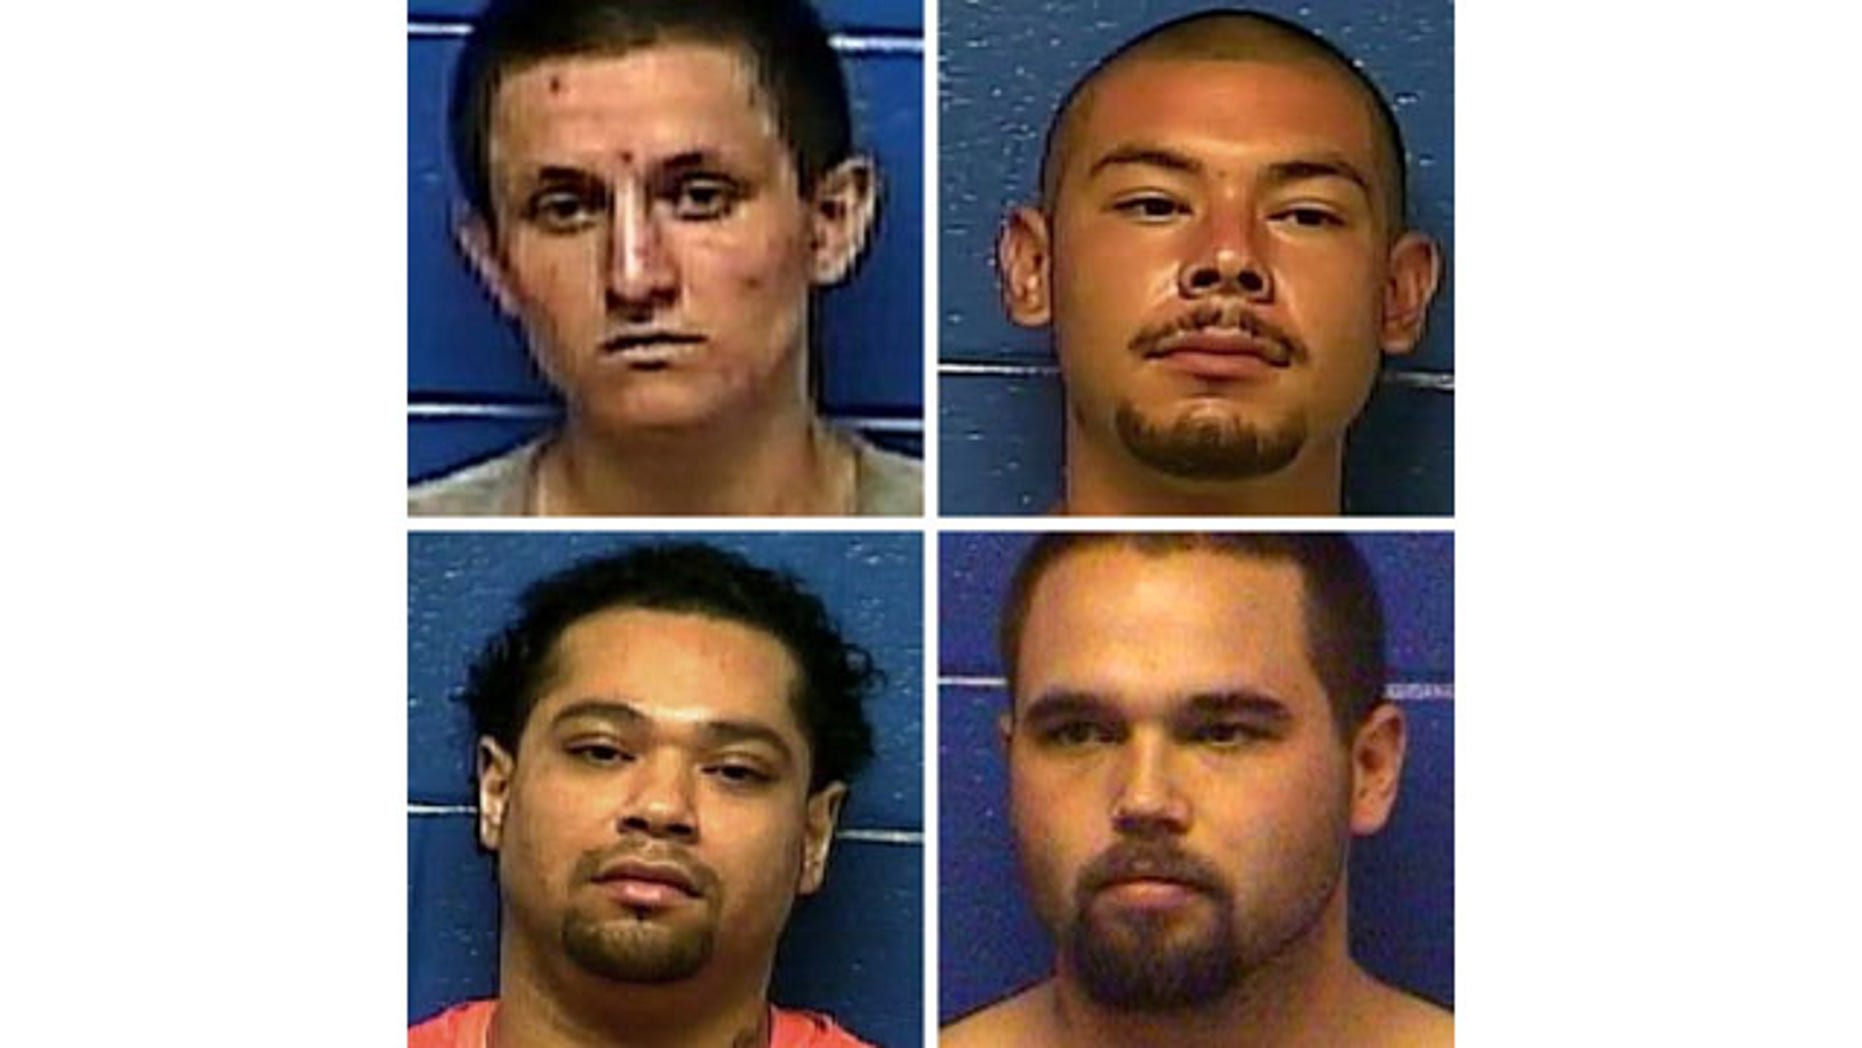 These photos show, clockwise from top left: Dylan Ray Three Irons, Prime Tounwin Brown, Triston Cheadle, and Anthony James Mendonca (Caddo County Sheriff's Office)